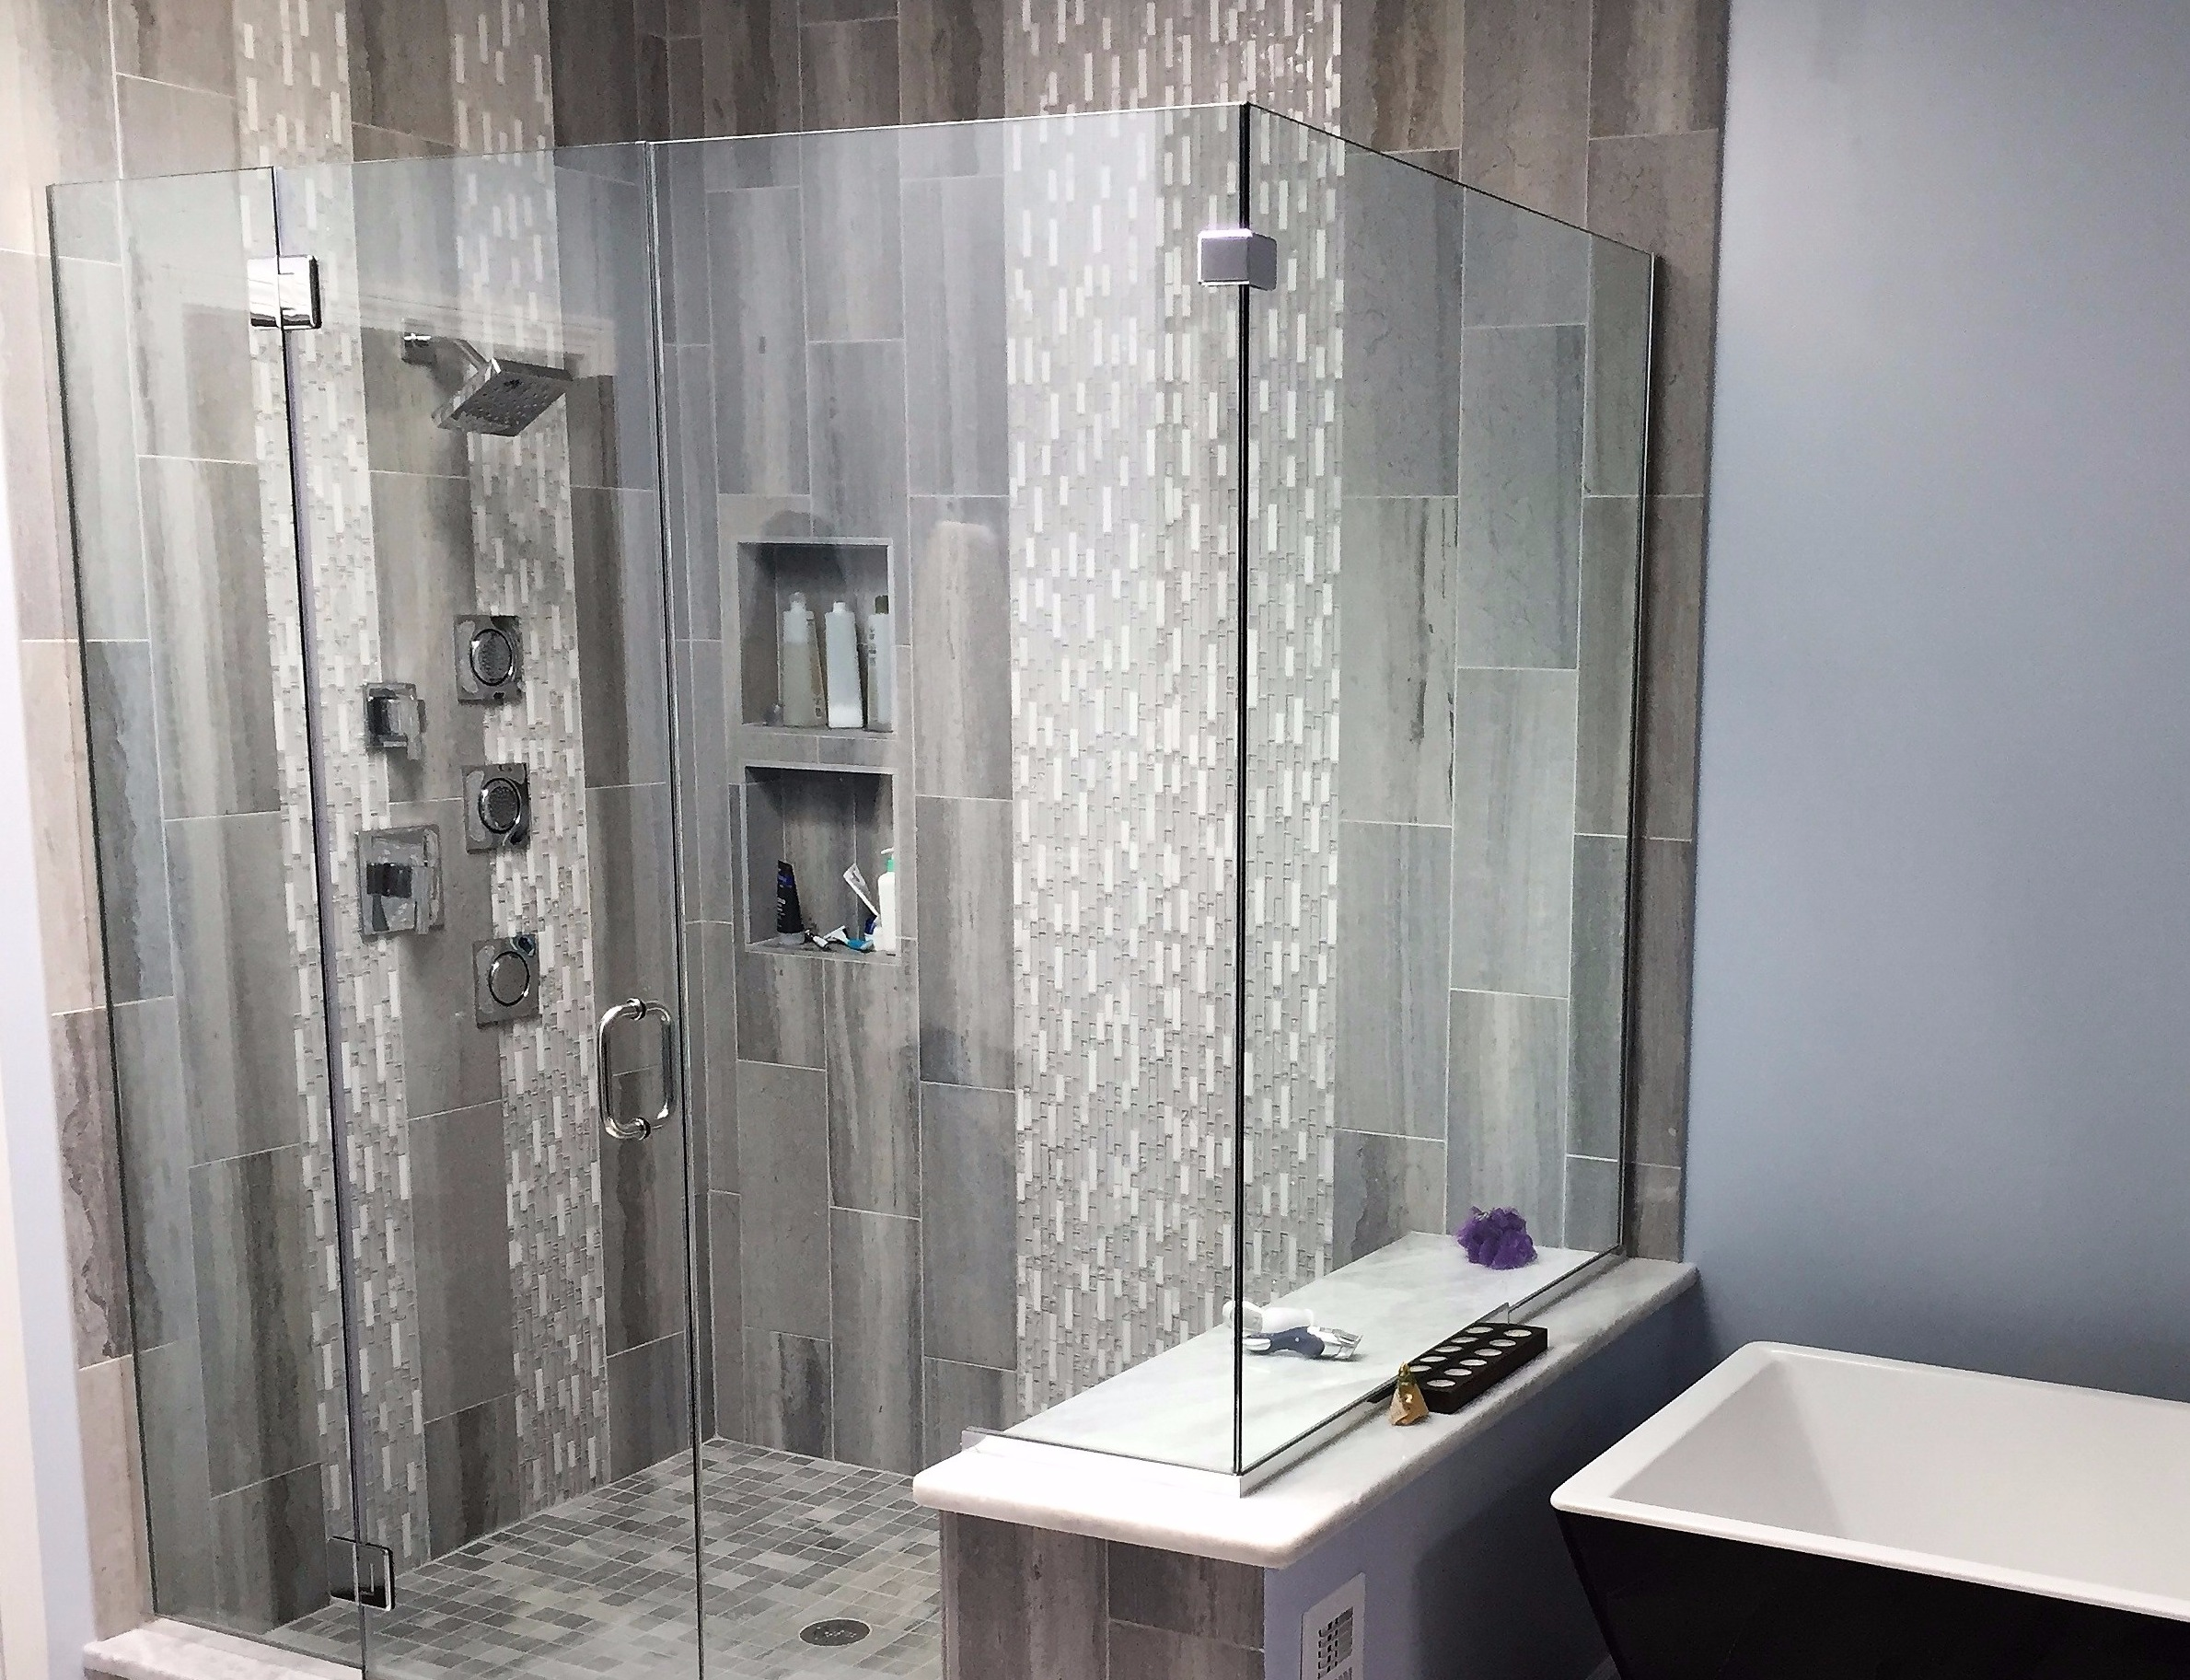 bathroom remodeling photos. Transform Your Bathroom With A Remodel Remodeling Photos